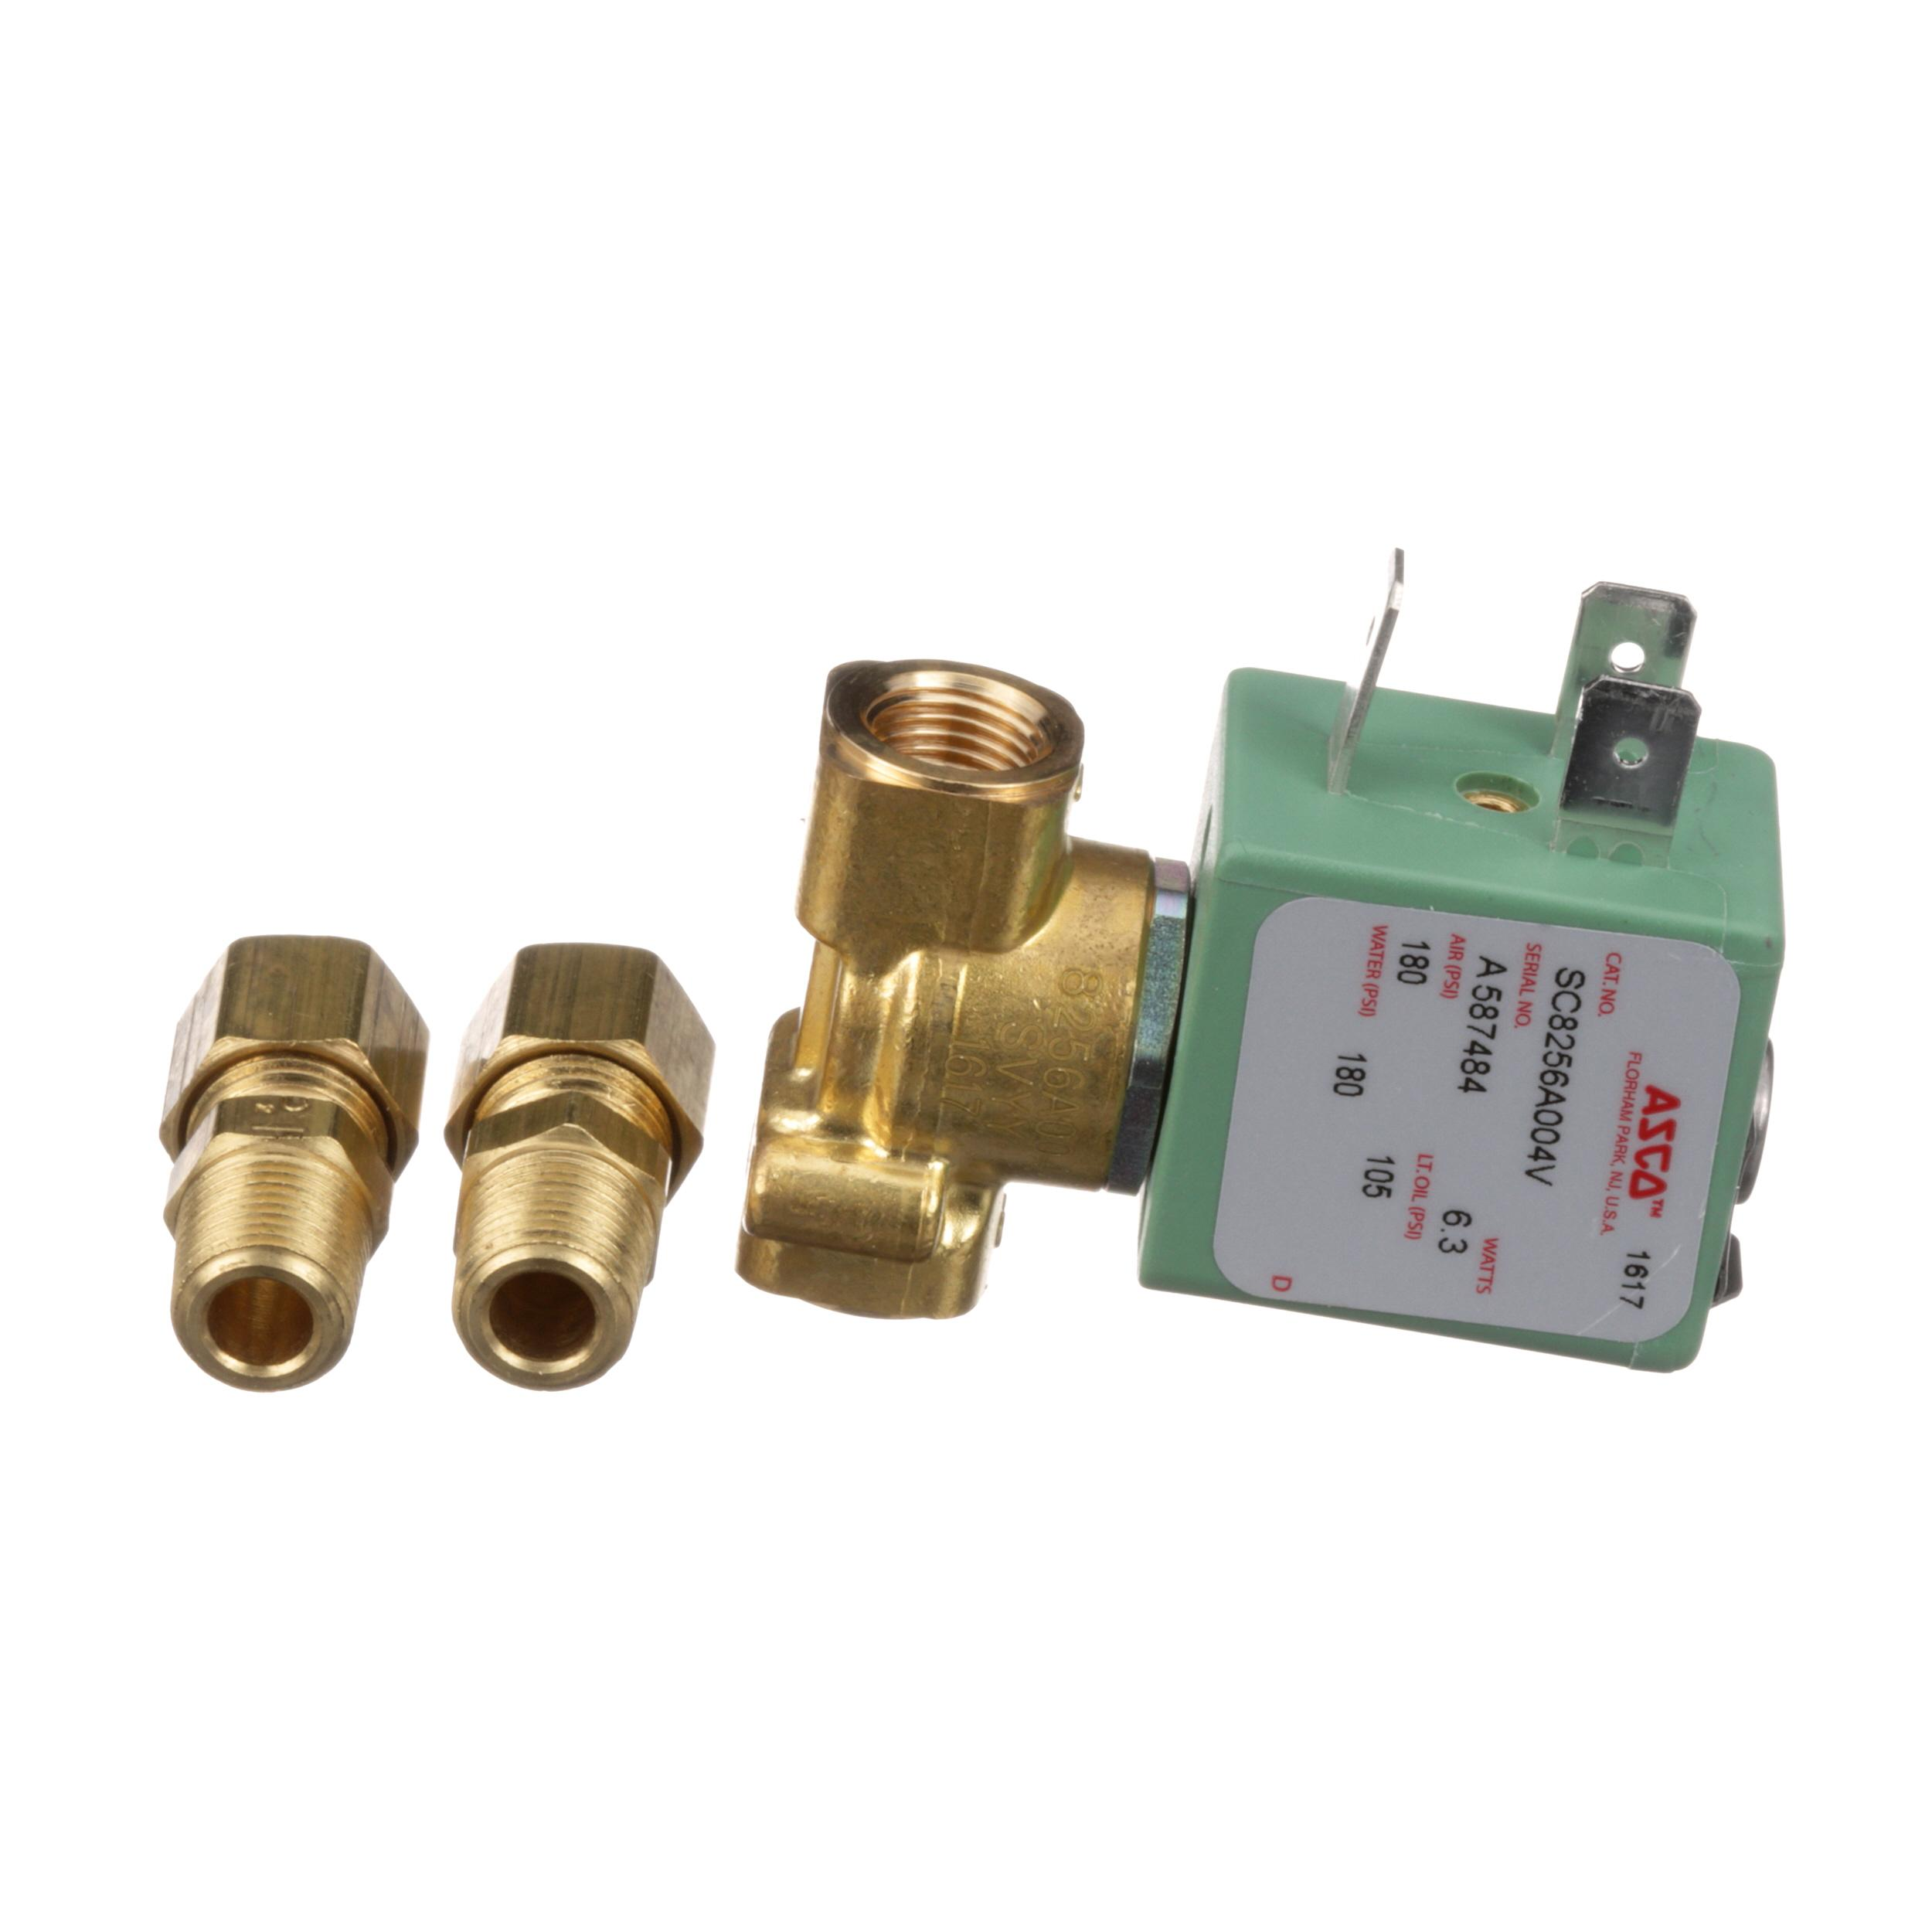 WINSTON PRODUCTS SOLENOID WATER 120V BRASS